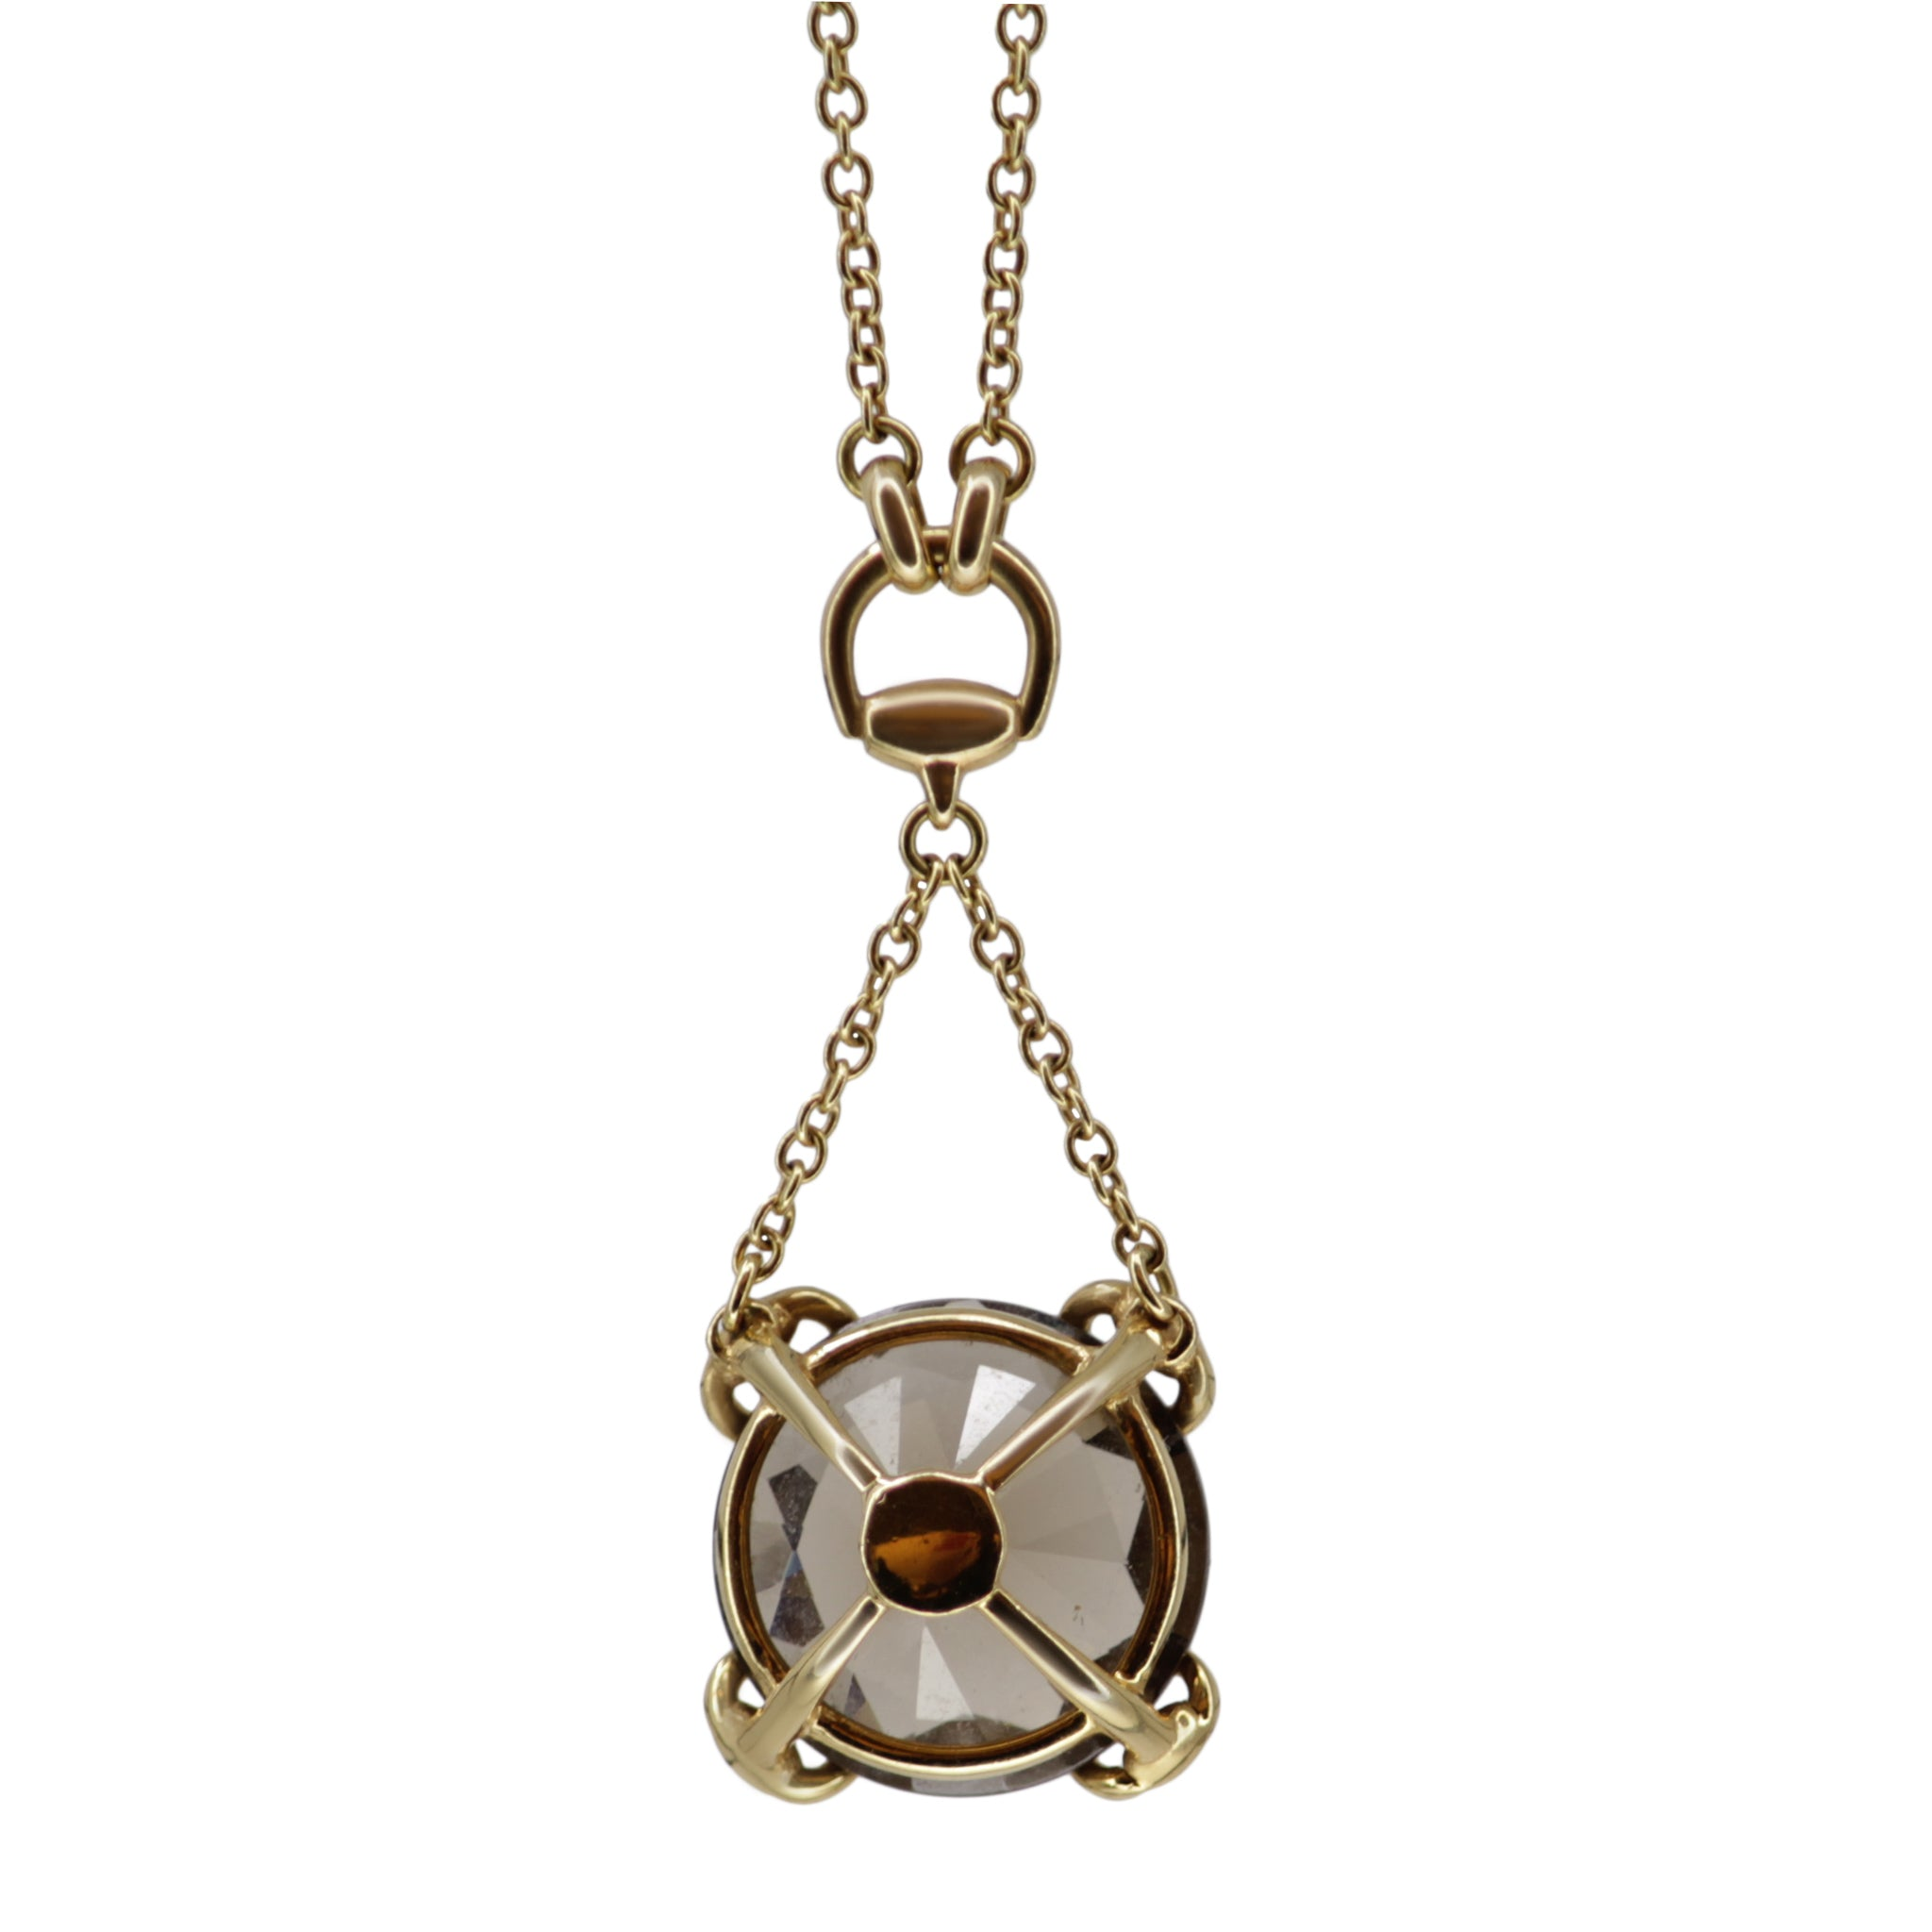 Gucci Topaz Horsebit Necklace - 18k Yellow Gold Necklace with Brown Topaz Gemstone